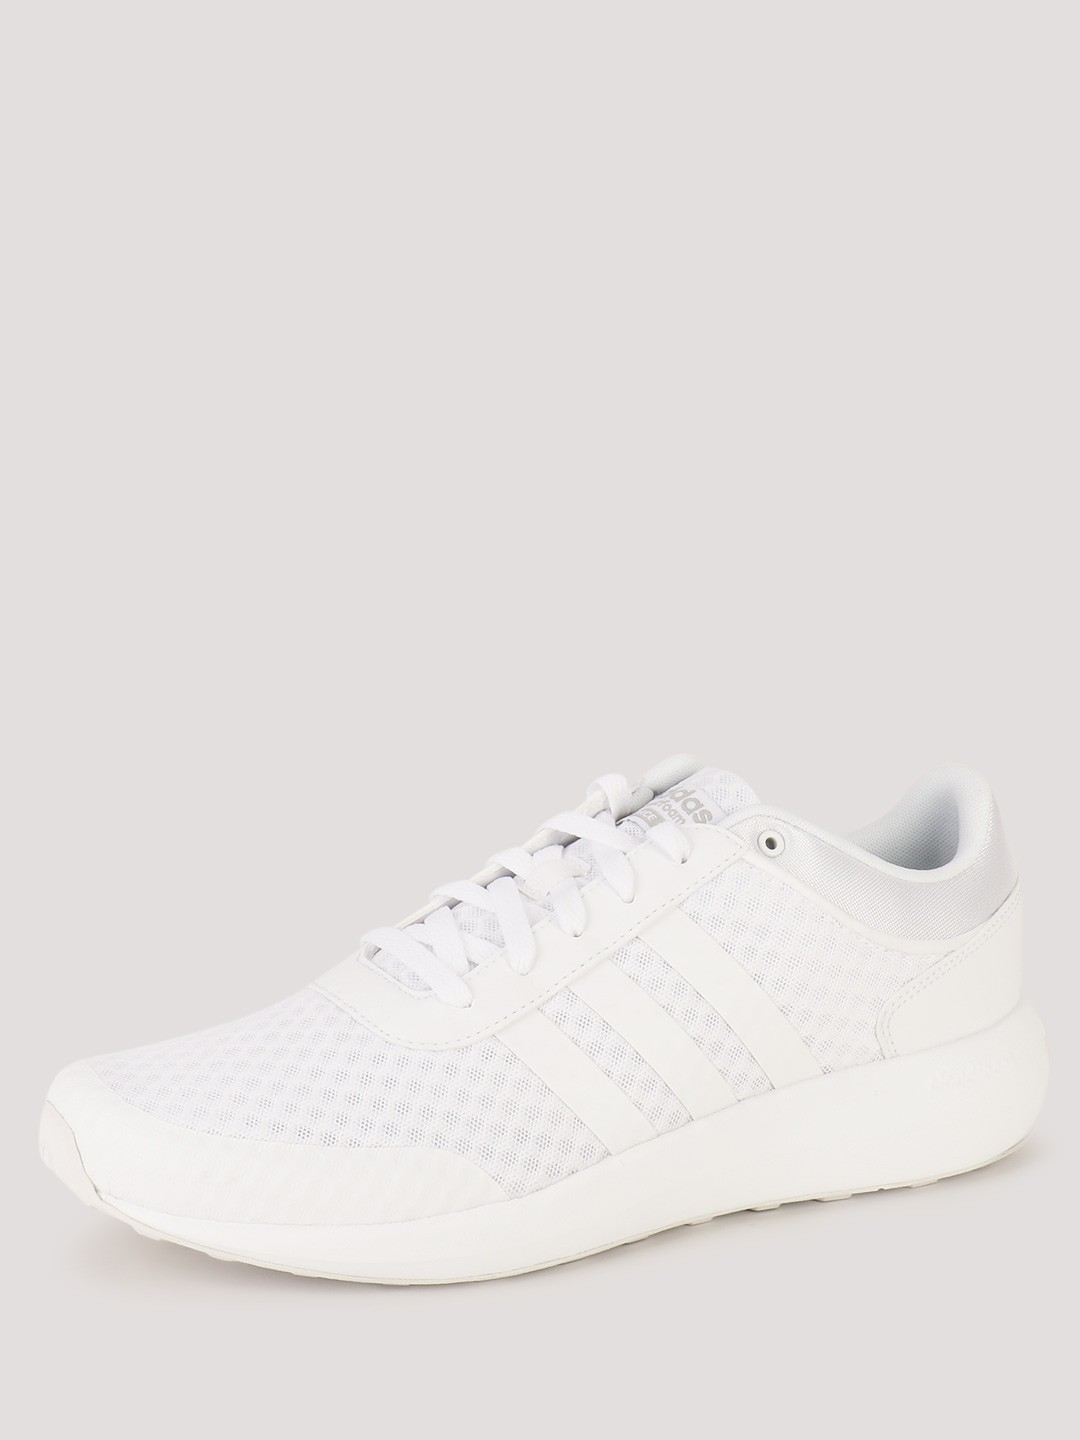 Neo White Navy Red Adidas: Buy Honeycomb Pattern Trainers With Cloudfoam Technology